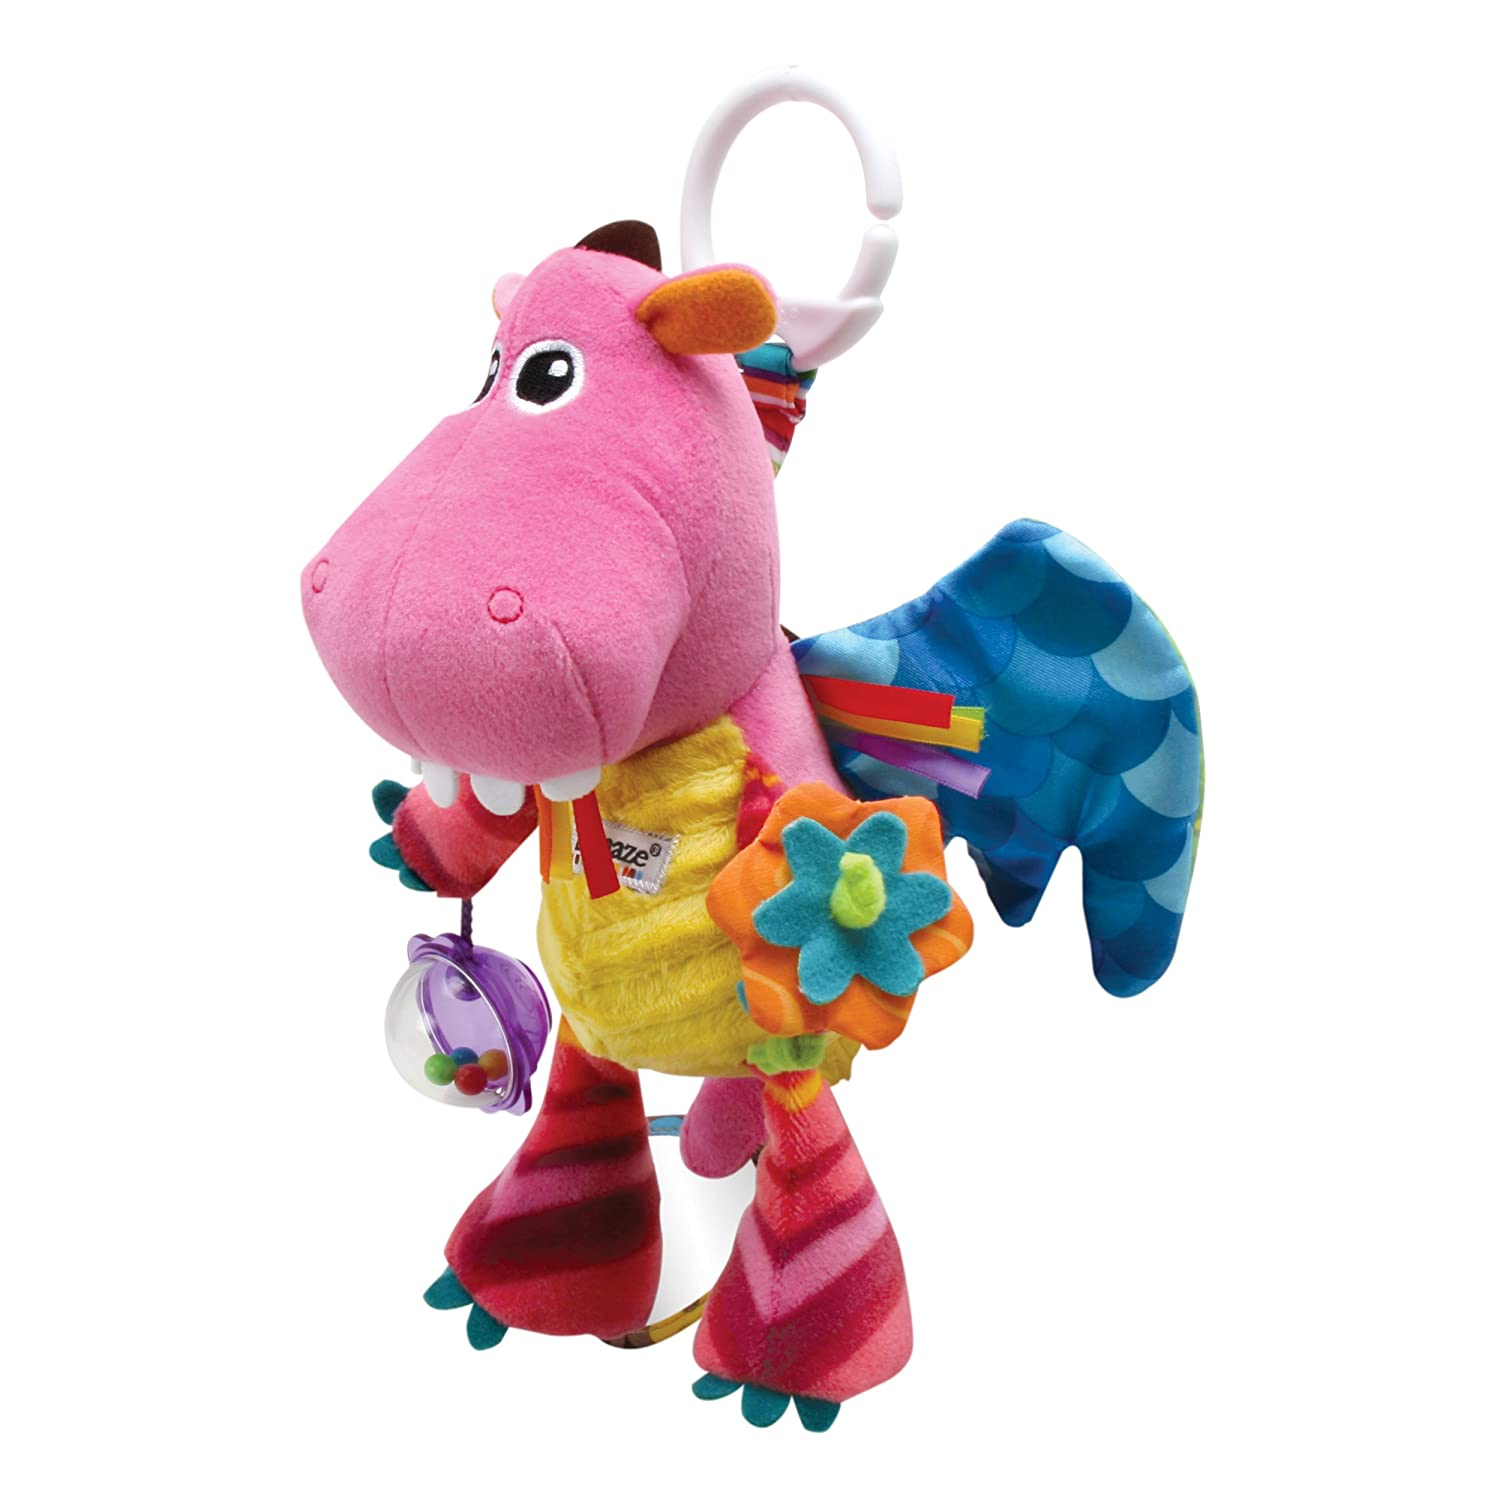 Lamaze LC Play et Grow Dee Dee der Drache Amazon Baby